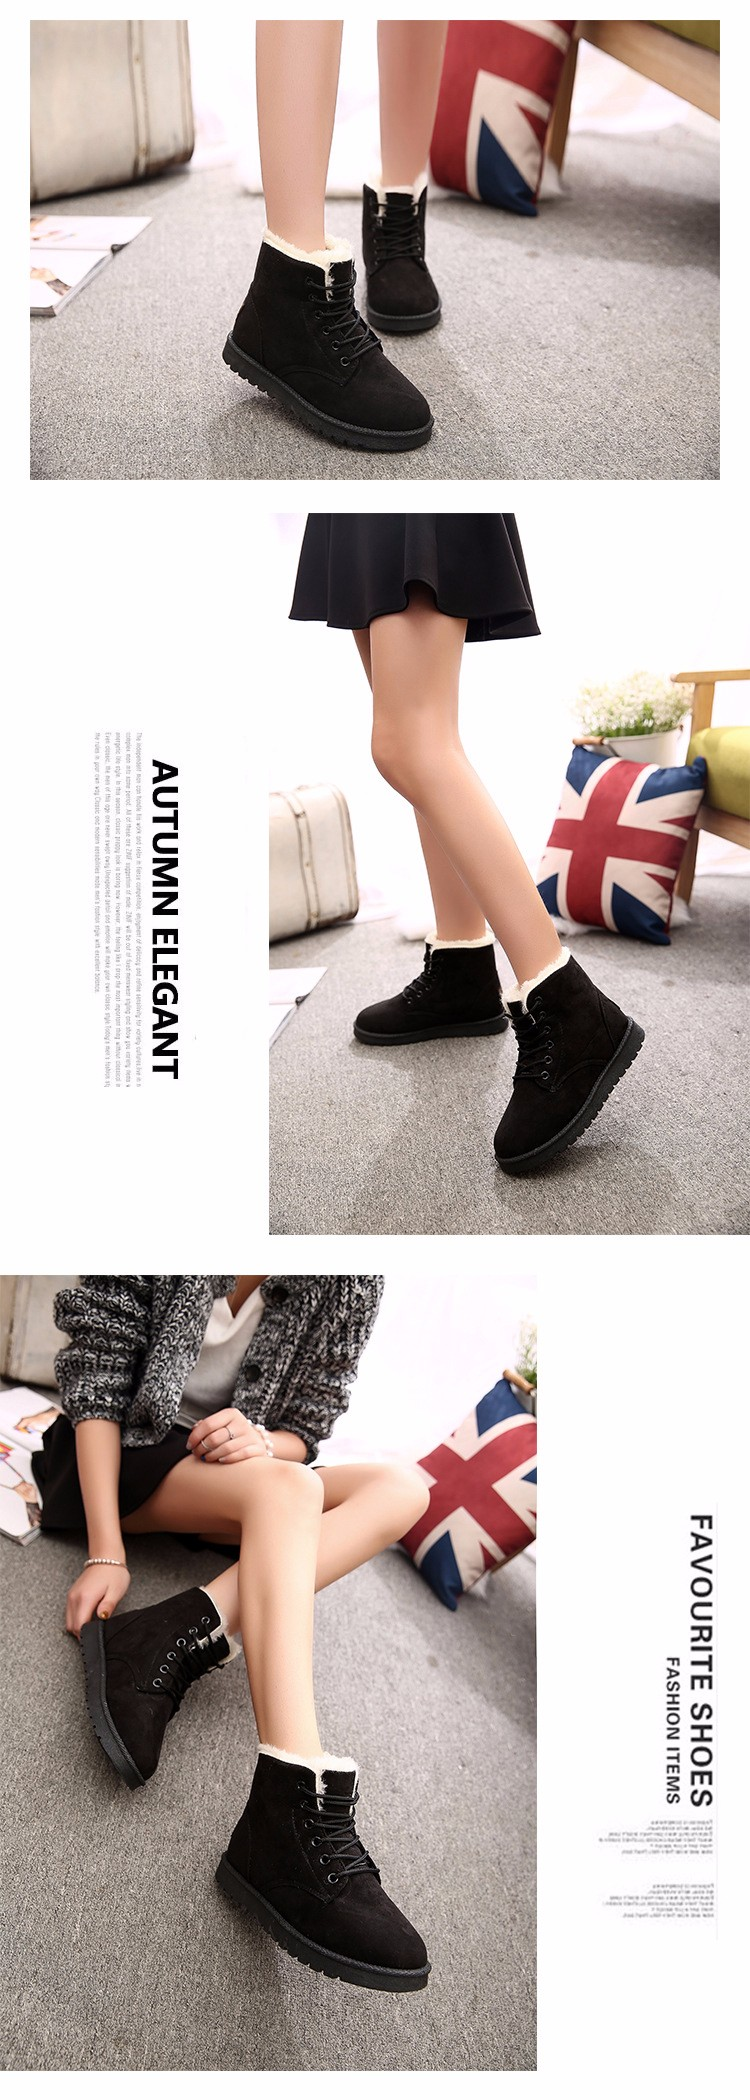 2016 Winter Woman Boots Lace-up Solid Flat Ankle Boots Casual Round Toe Woman Shoes Fashion Warm Plus Cotton Shoes ST903 (3)